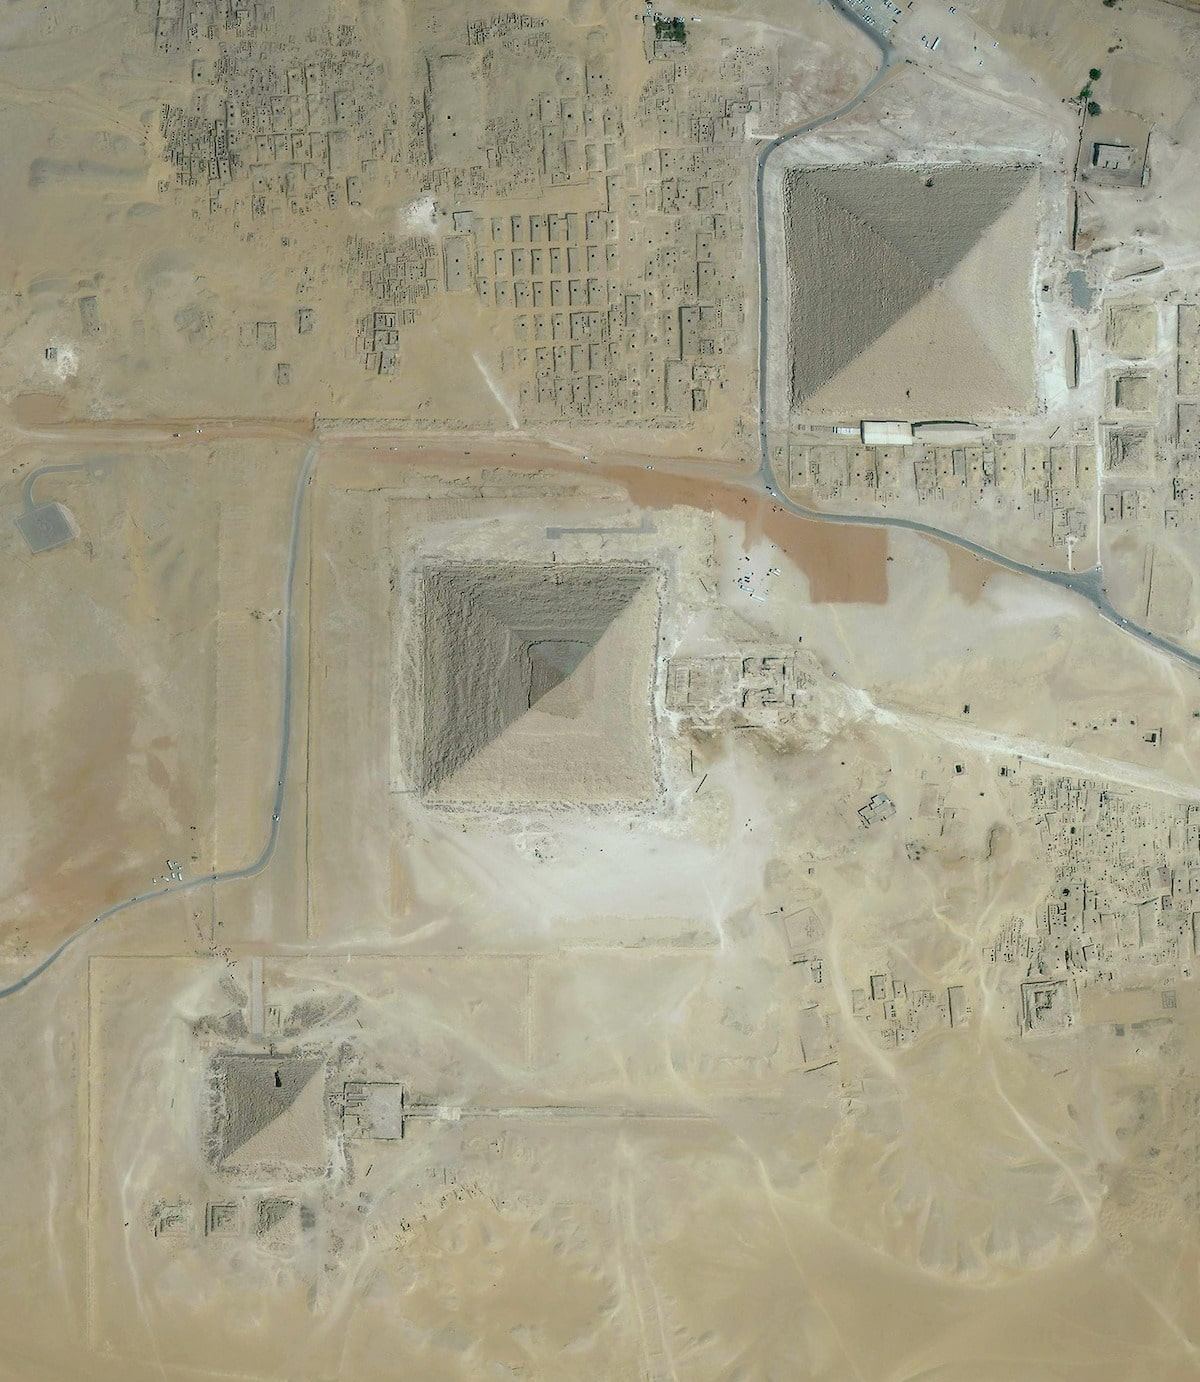 Overhead View of the Great Pyramids of Giza